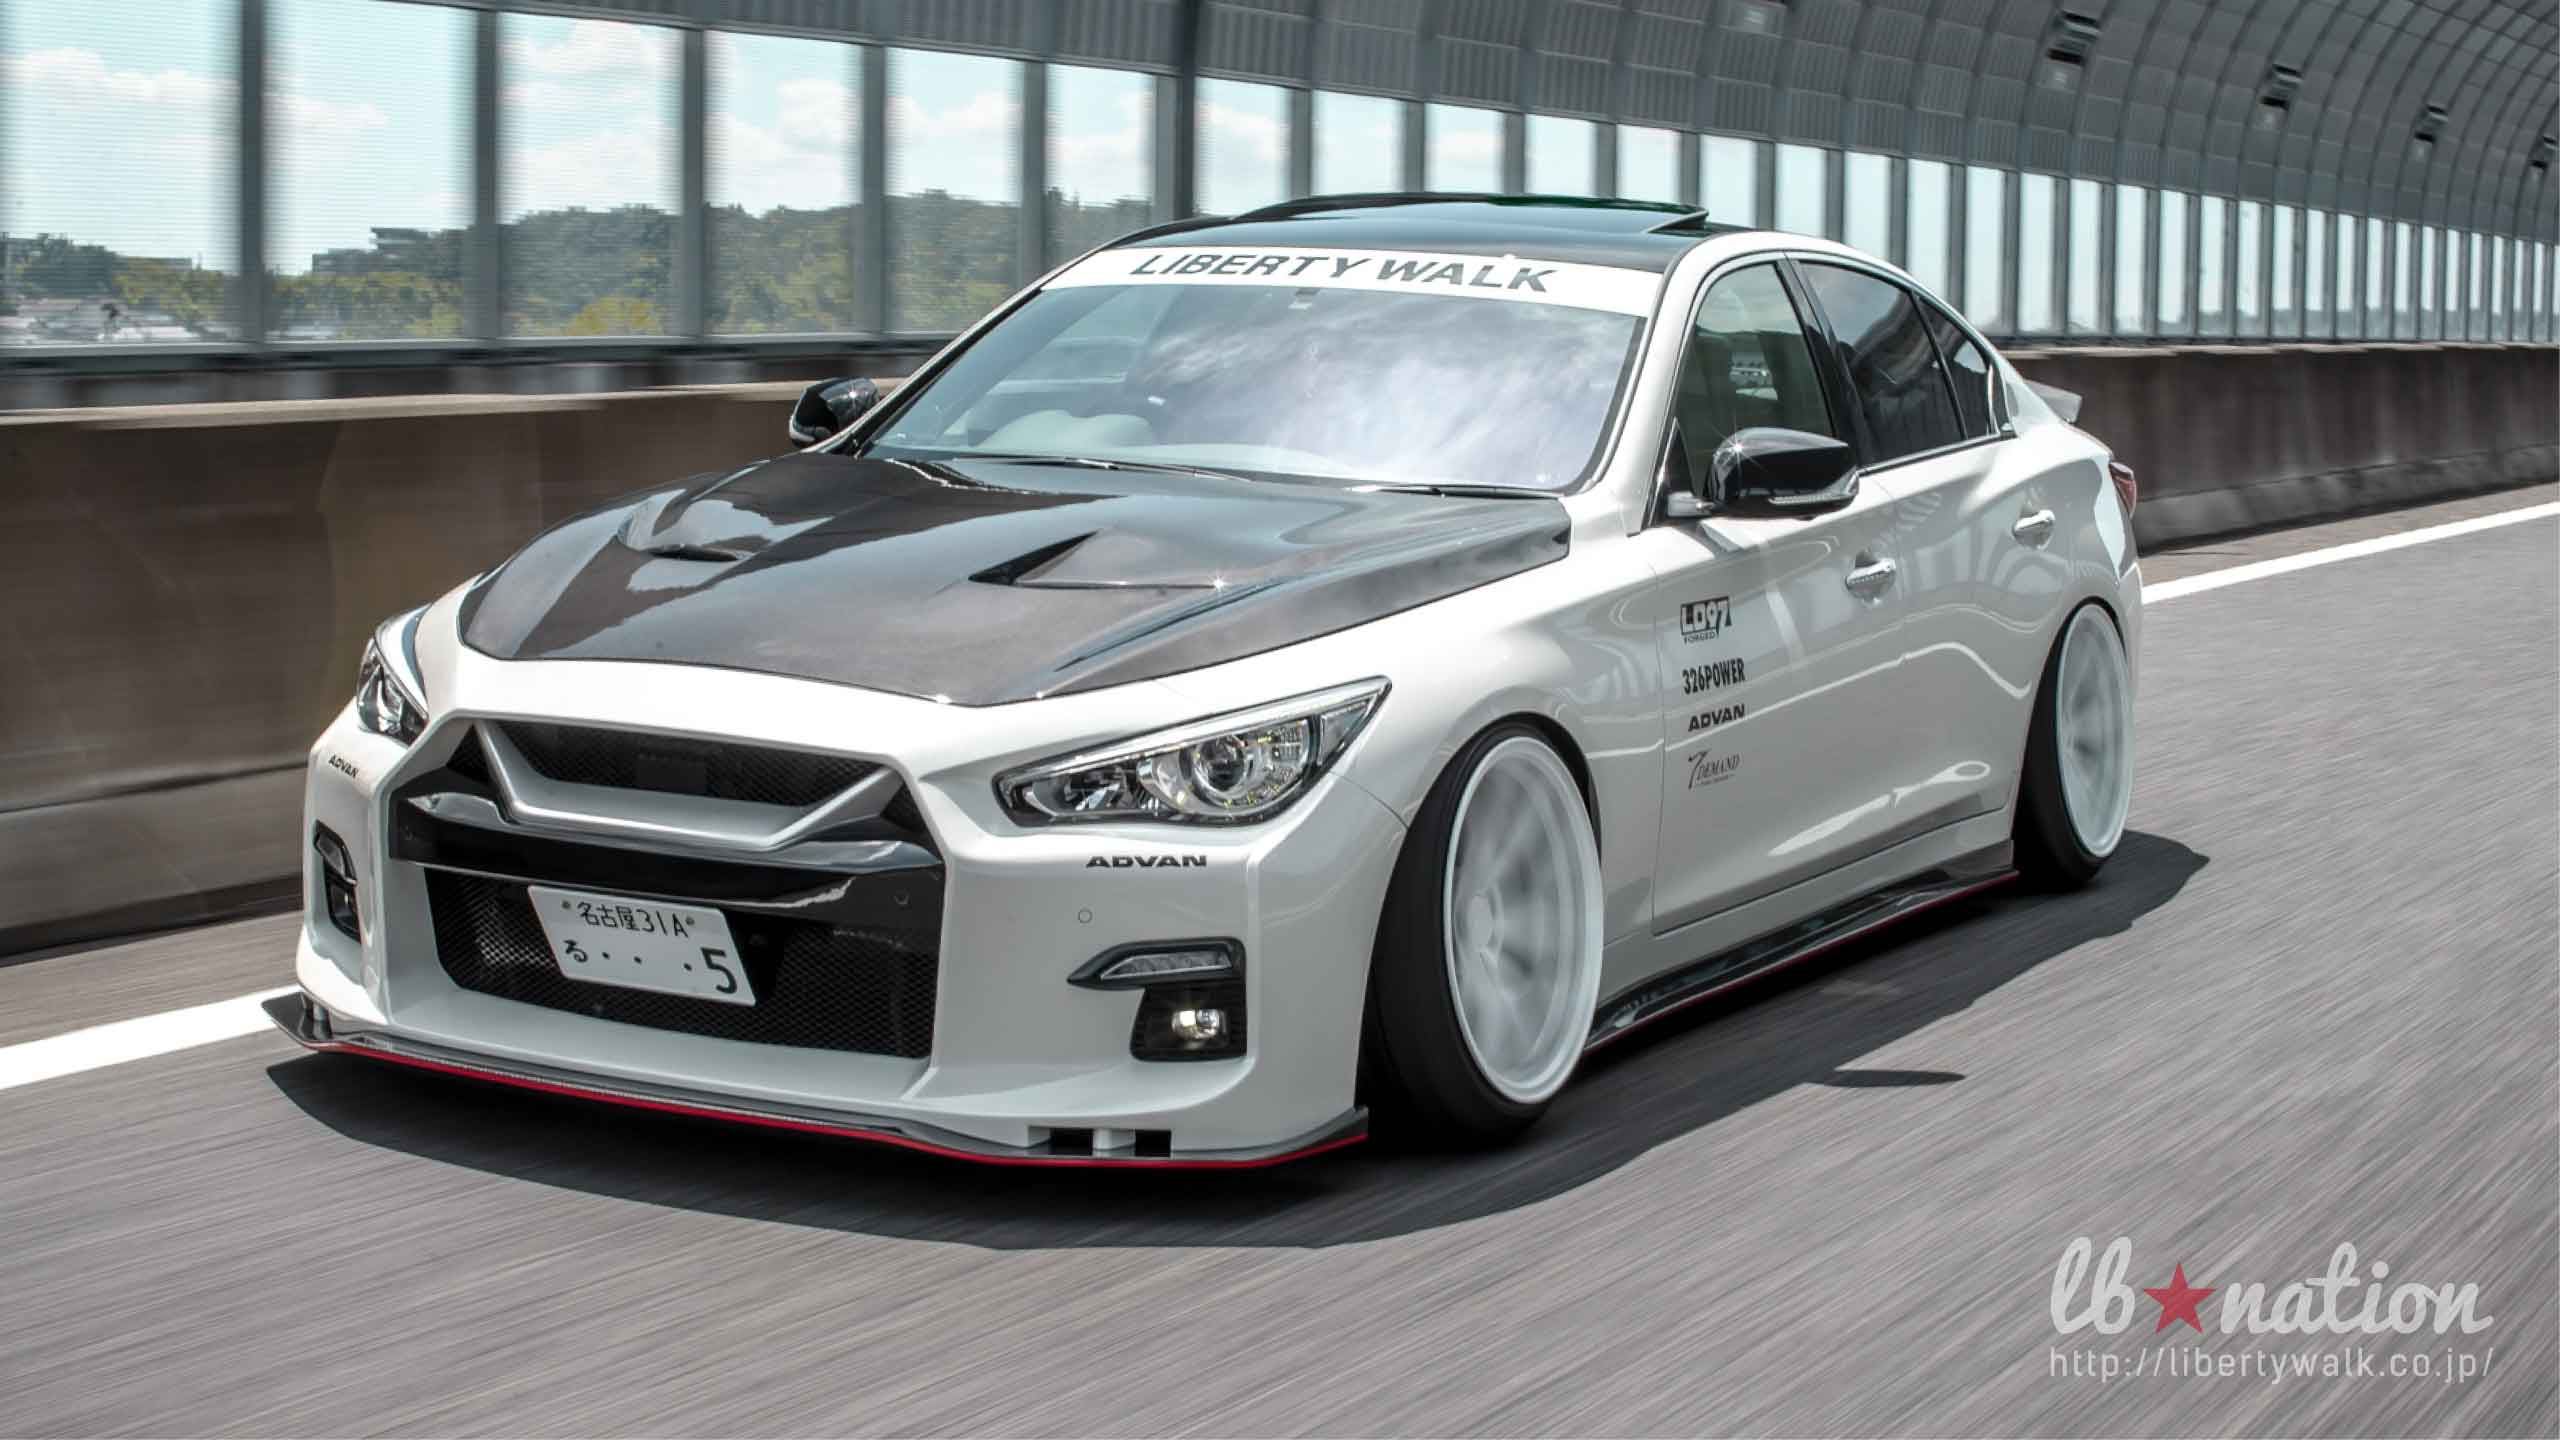 V37_20 lb★nation  NISSAN V37 SKYLINE / INFINITI Q50